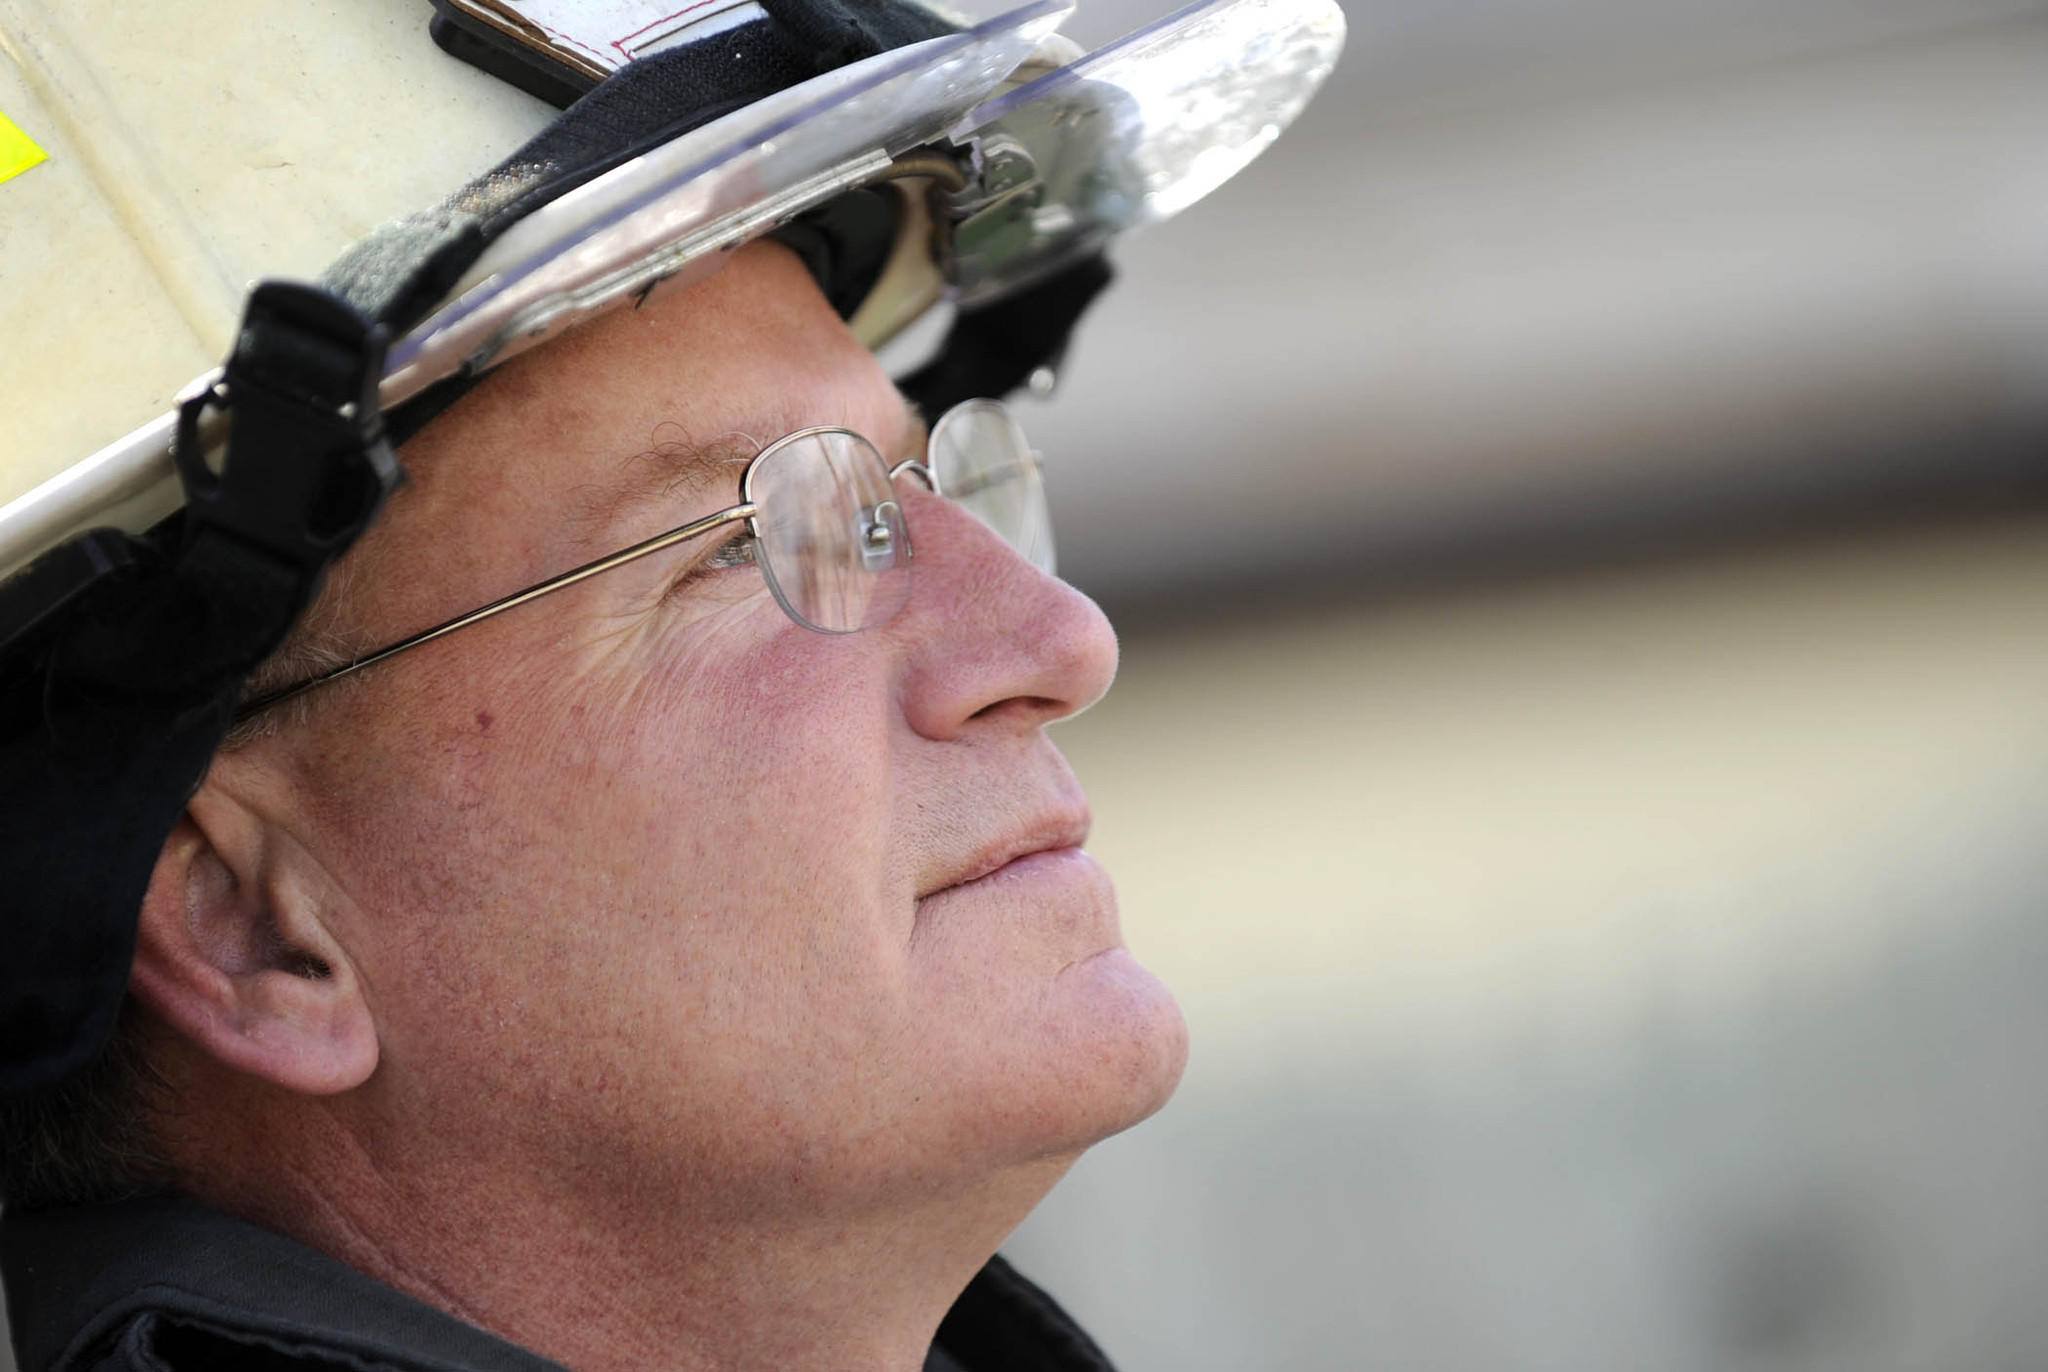 Allentown Fire Chief Robert Scheirer is retiring this month after 22 years on the force. He was named chief in 2008.